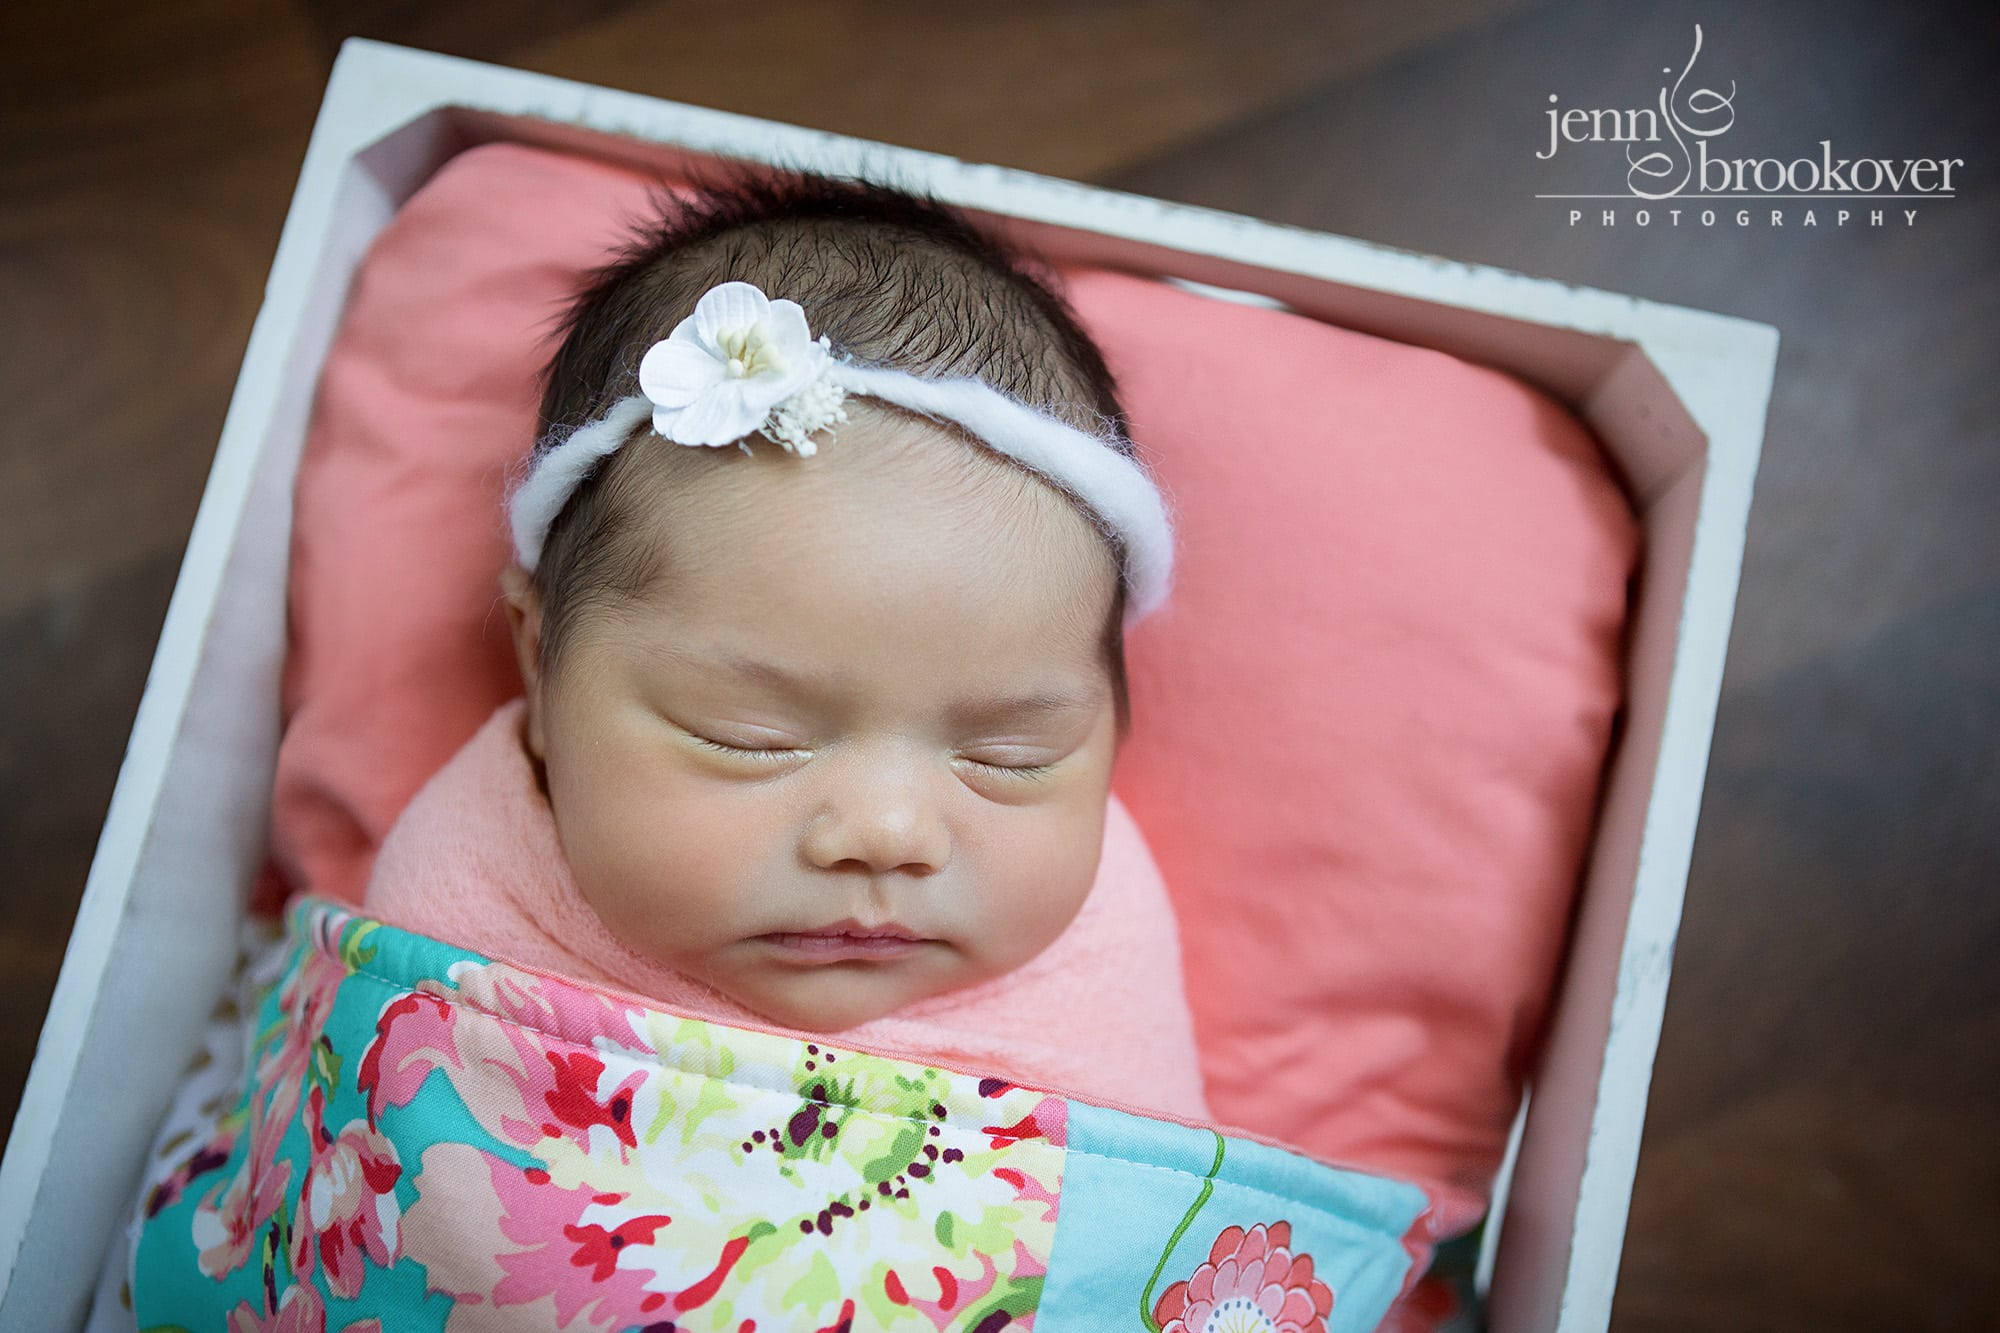 newborn baby girl in a coral, pink and teal quilt and white headband taken by Jenn Brookover in San Antonio